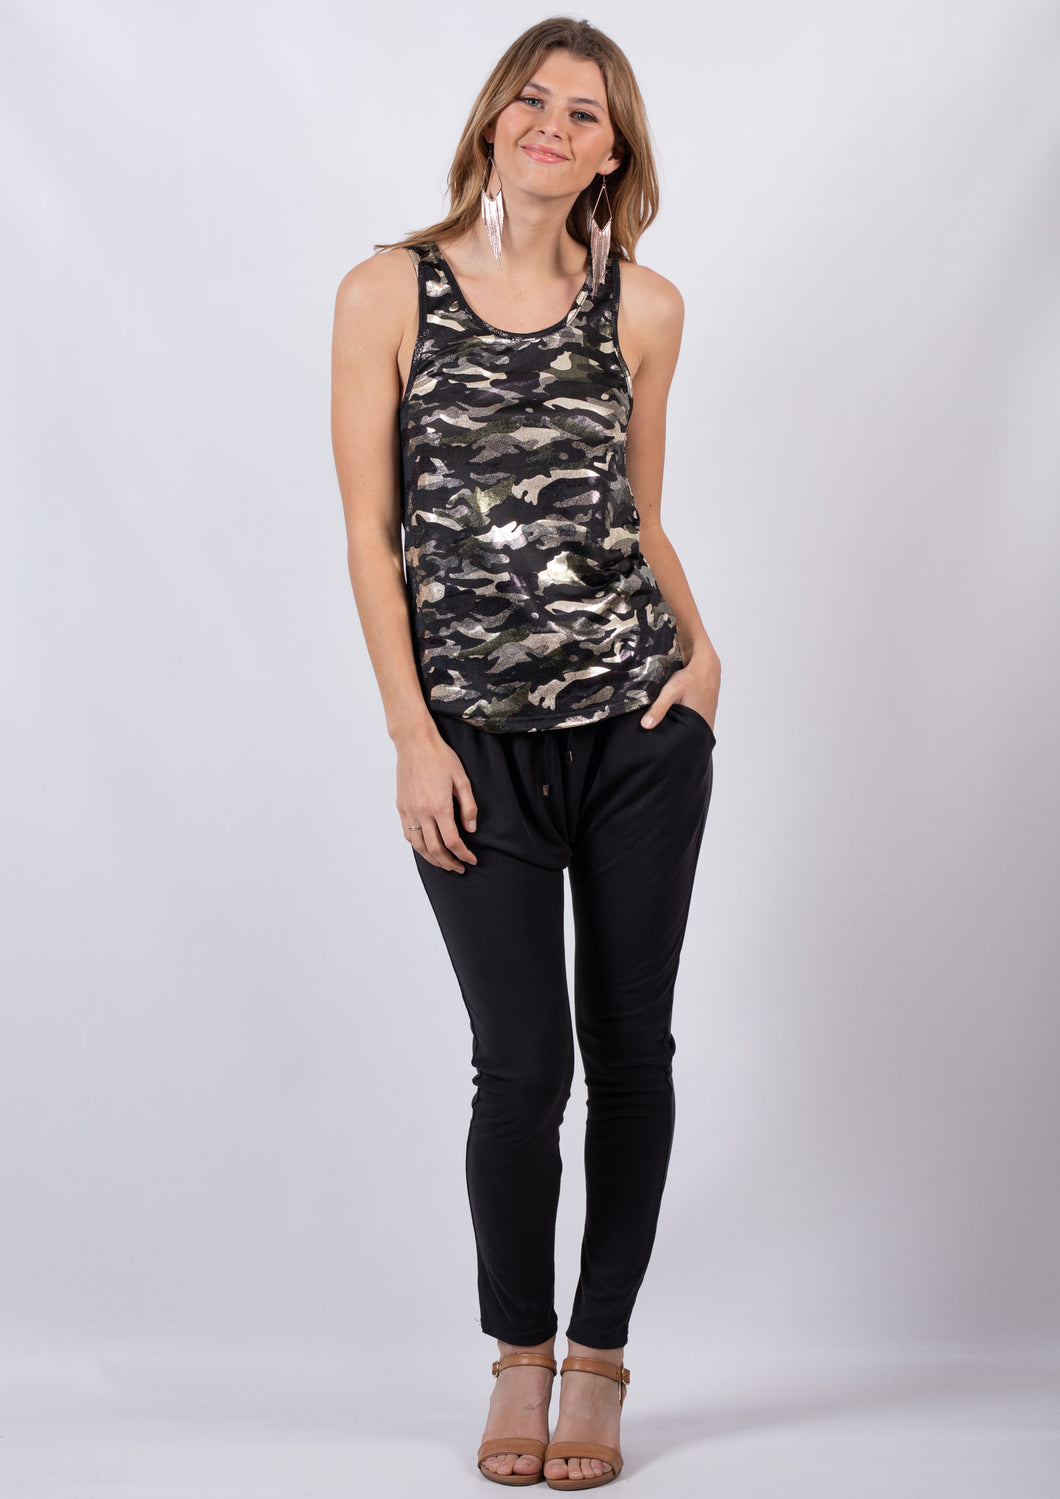 JEN0062SS Camo Sleeveless Top (Pack)